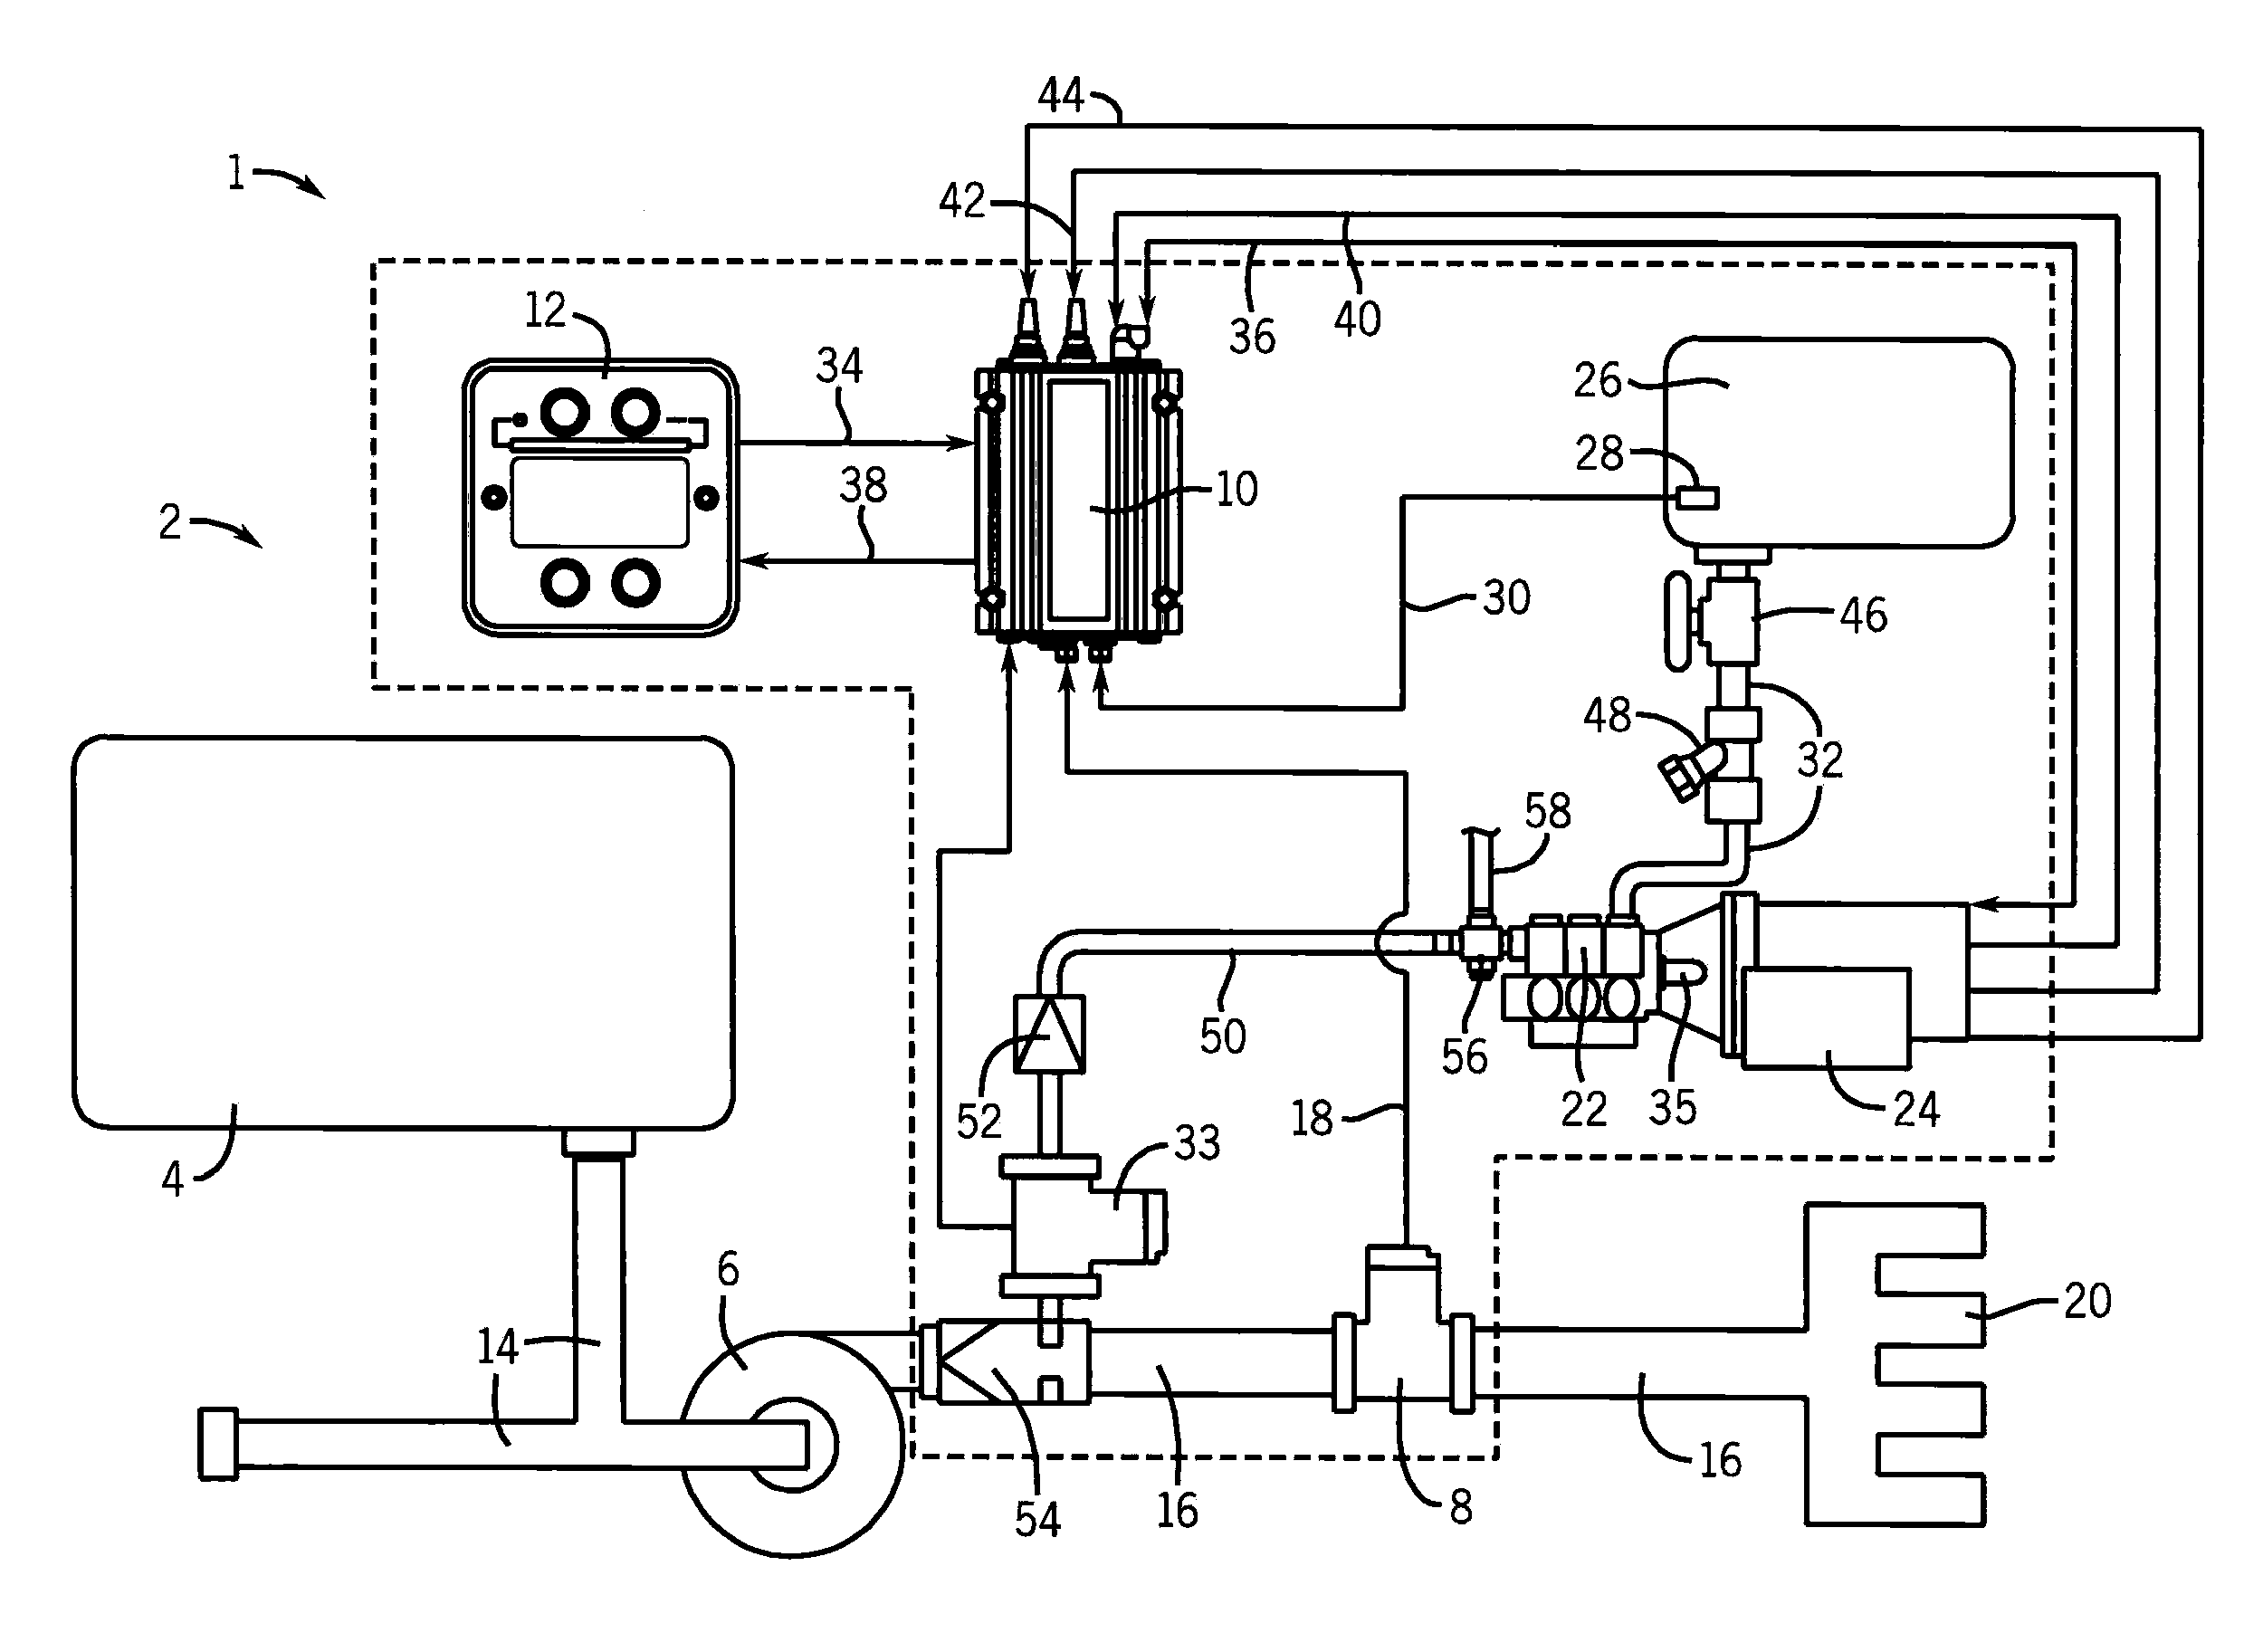 Wiring Diagram Case Tractor Wiring Diagram 1030 Case Tractor Wiring